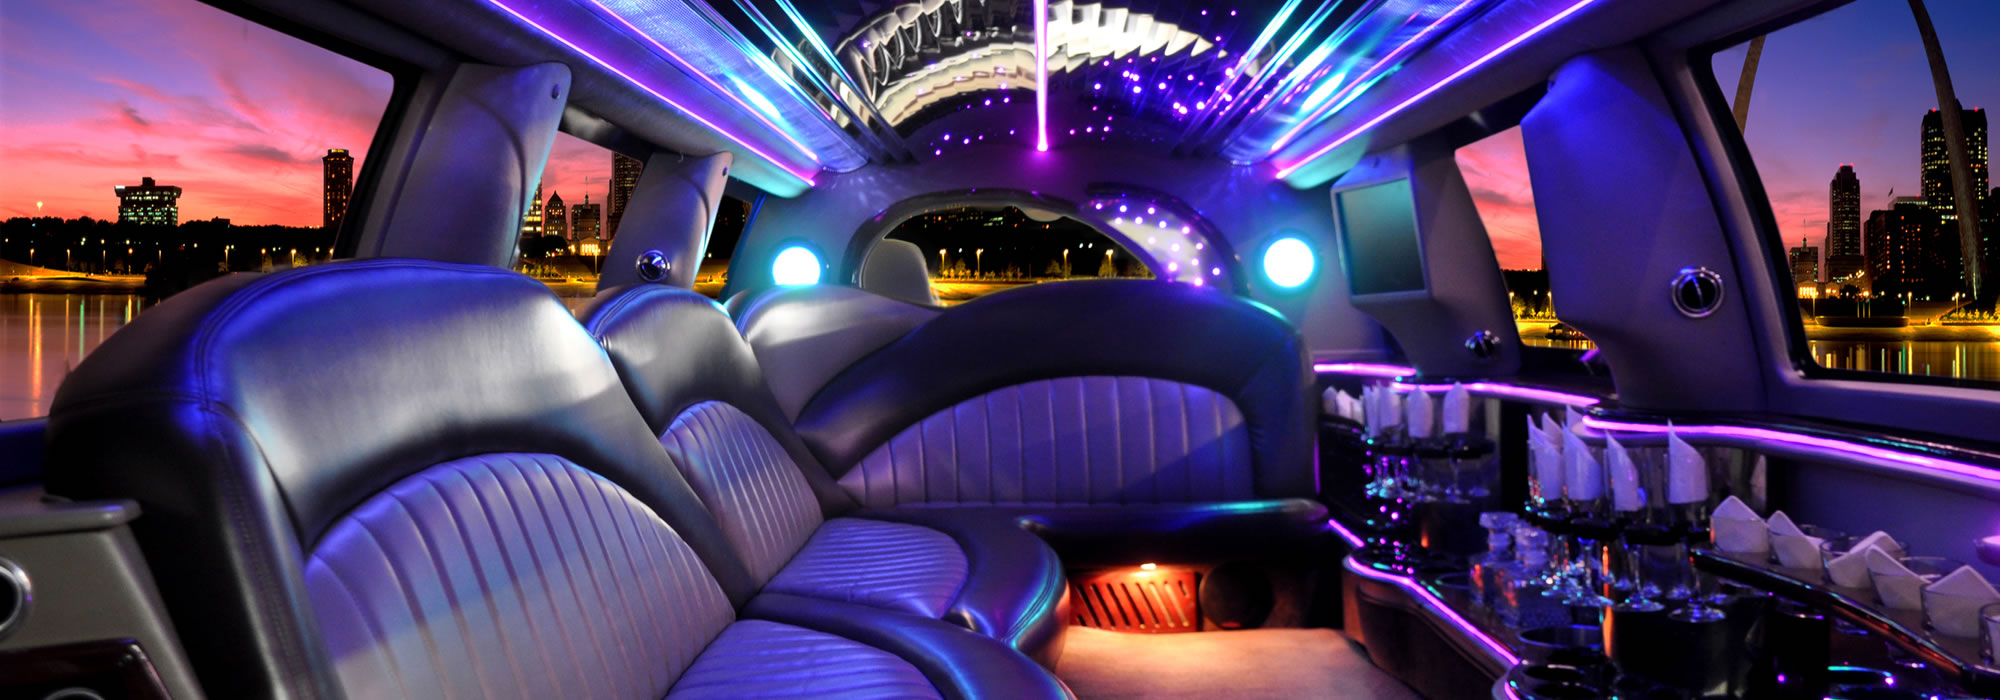 Nights Out limo hire